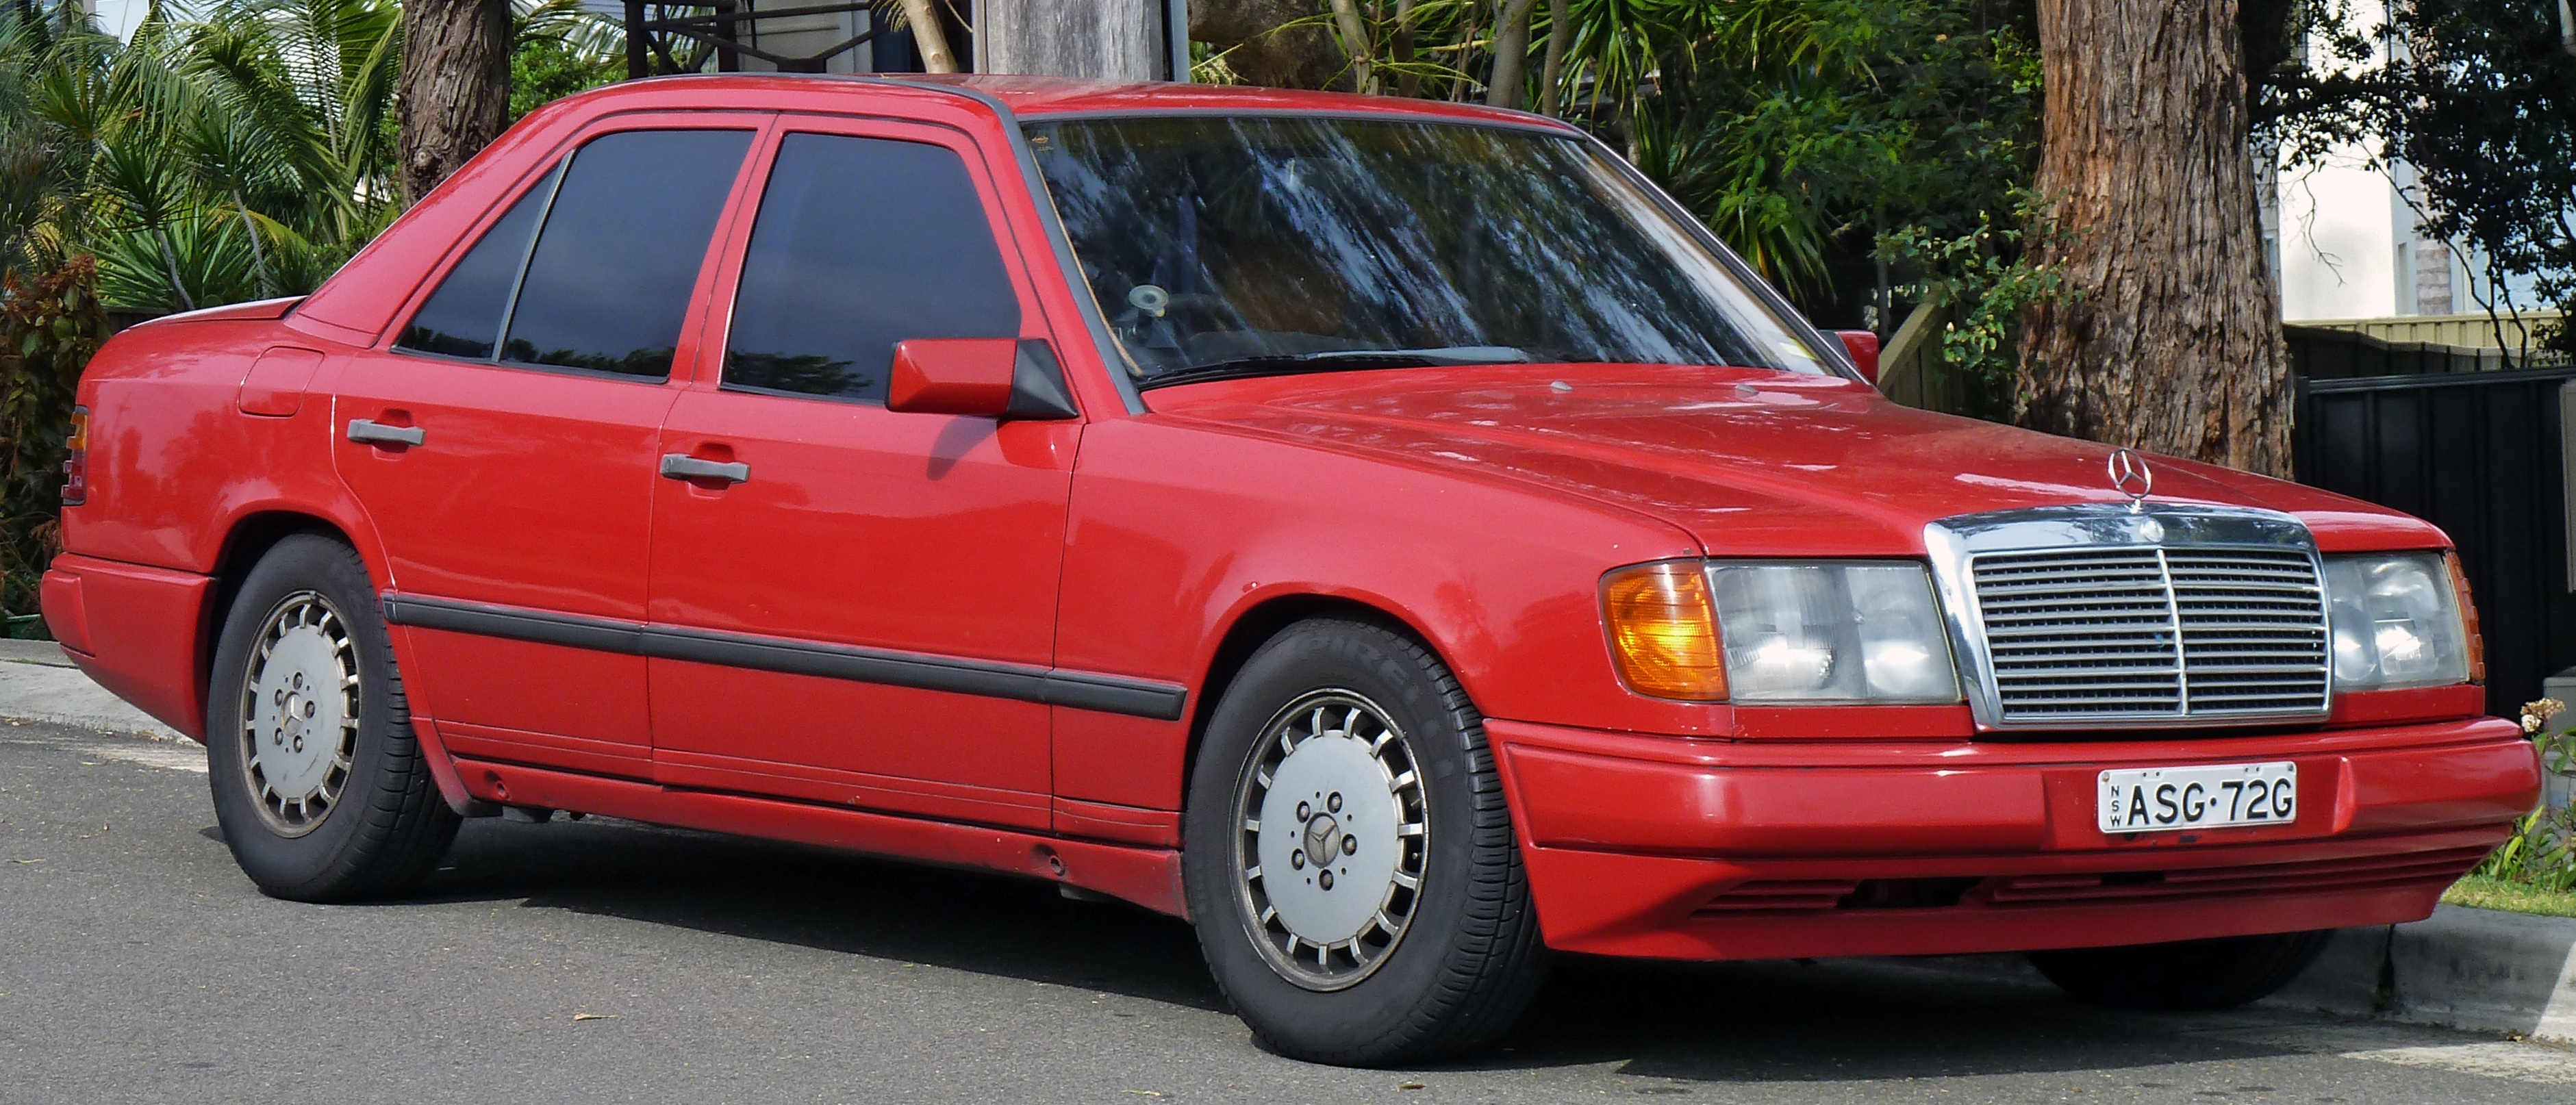 Mercedes Benz W124 Modified Fresh File1986 1989 Mercedes Benz W124 Sedan 01 Wikimedia Commons-1277 Of Luxury Mercedes Benz W124 Modified